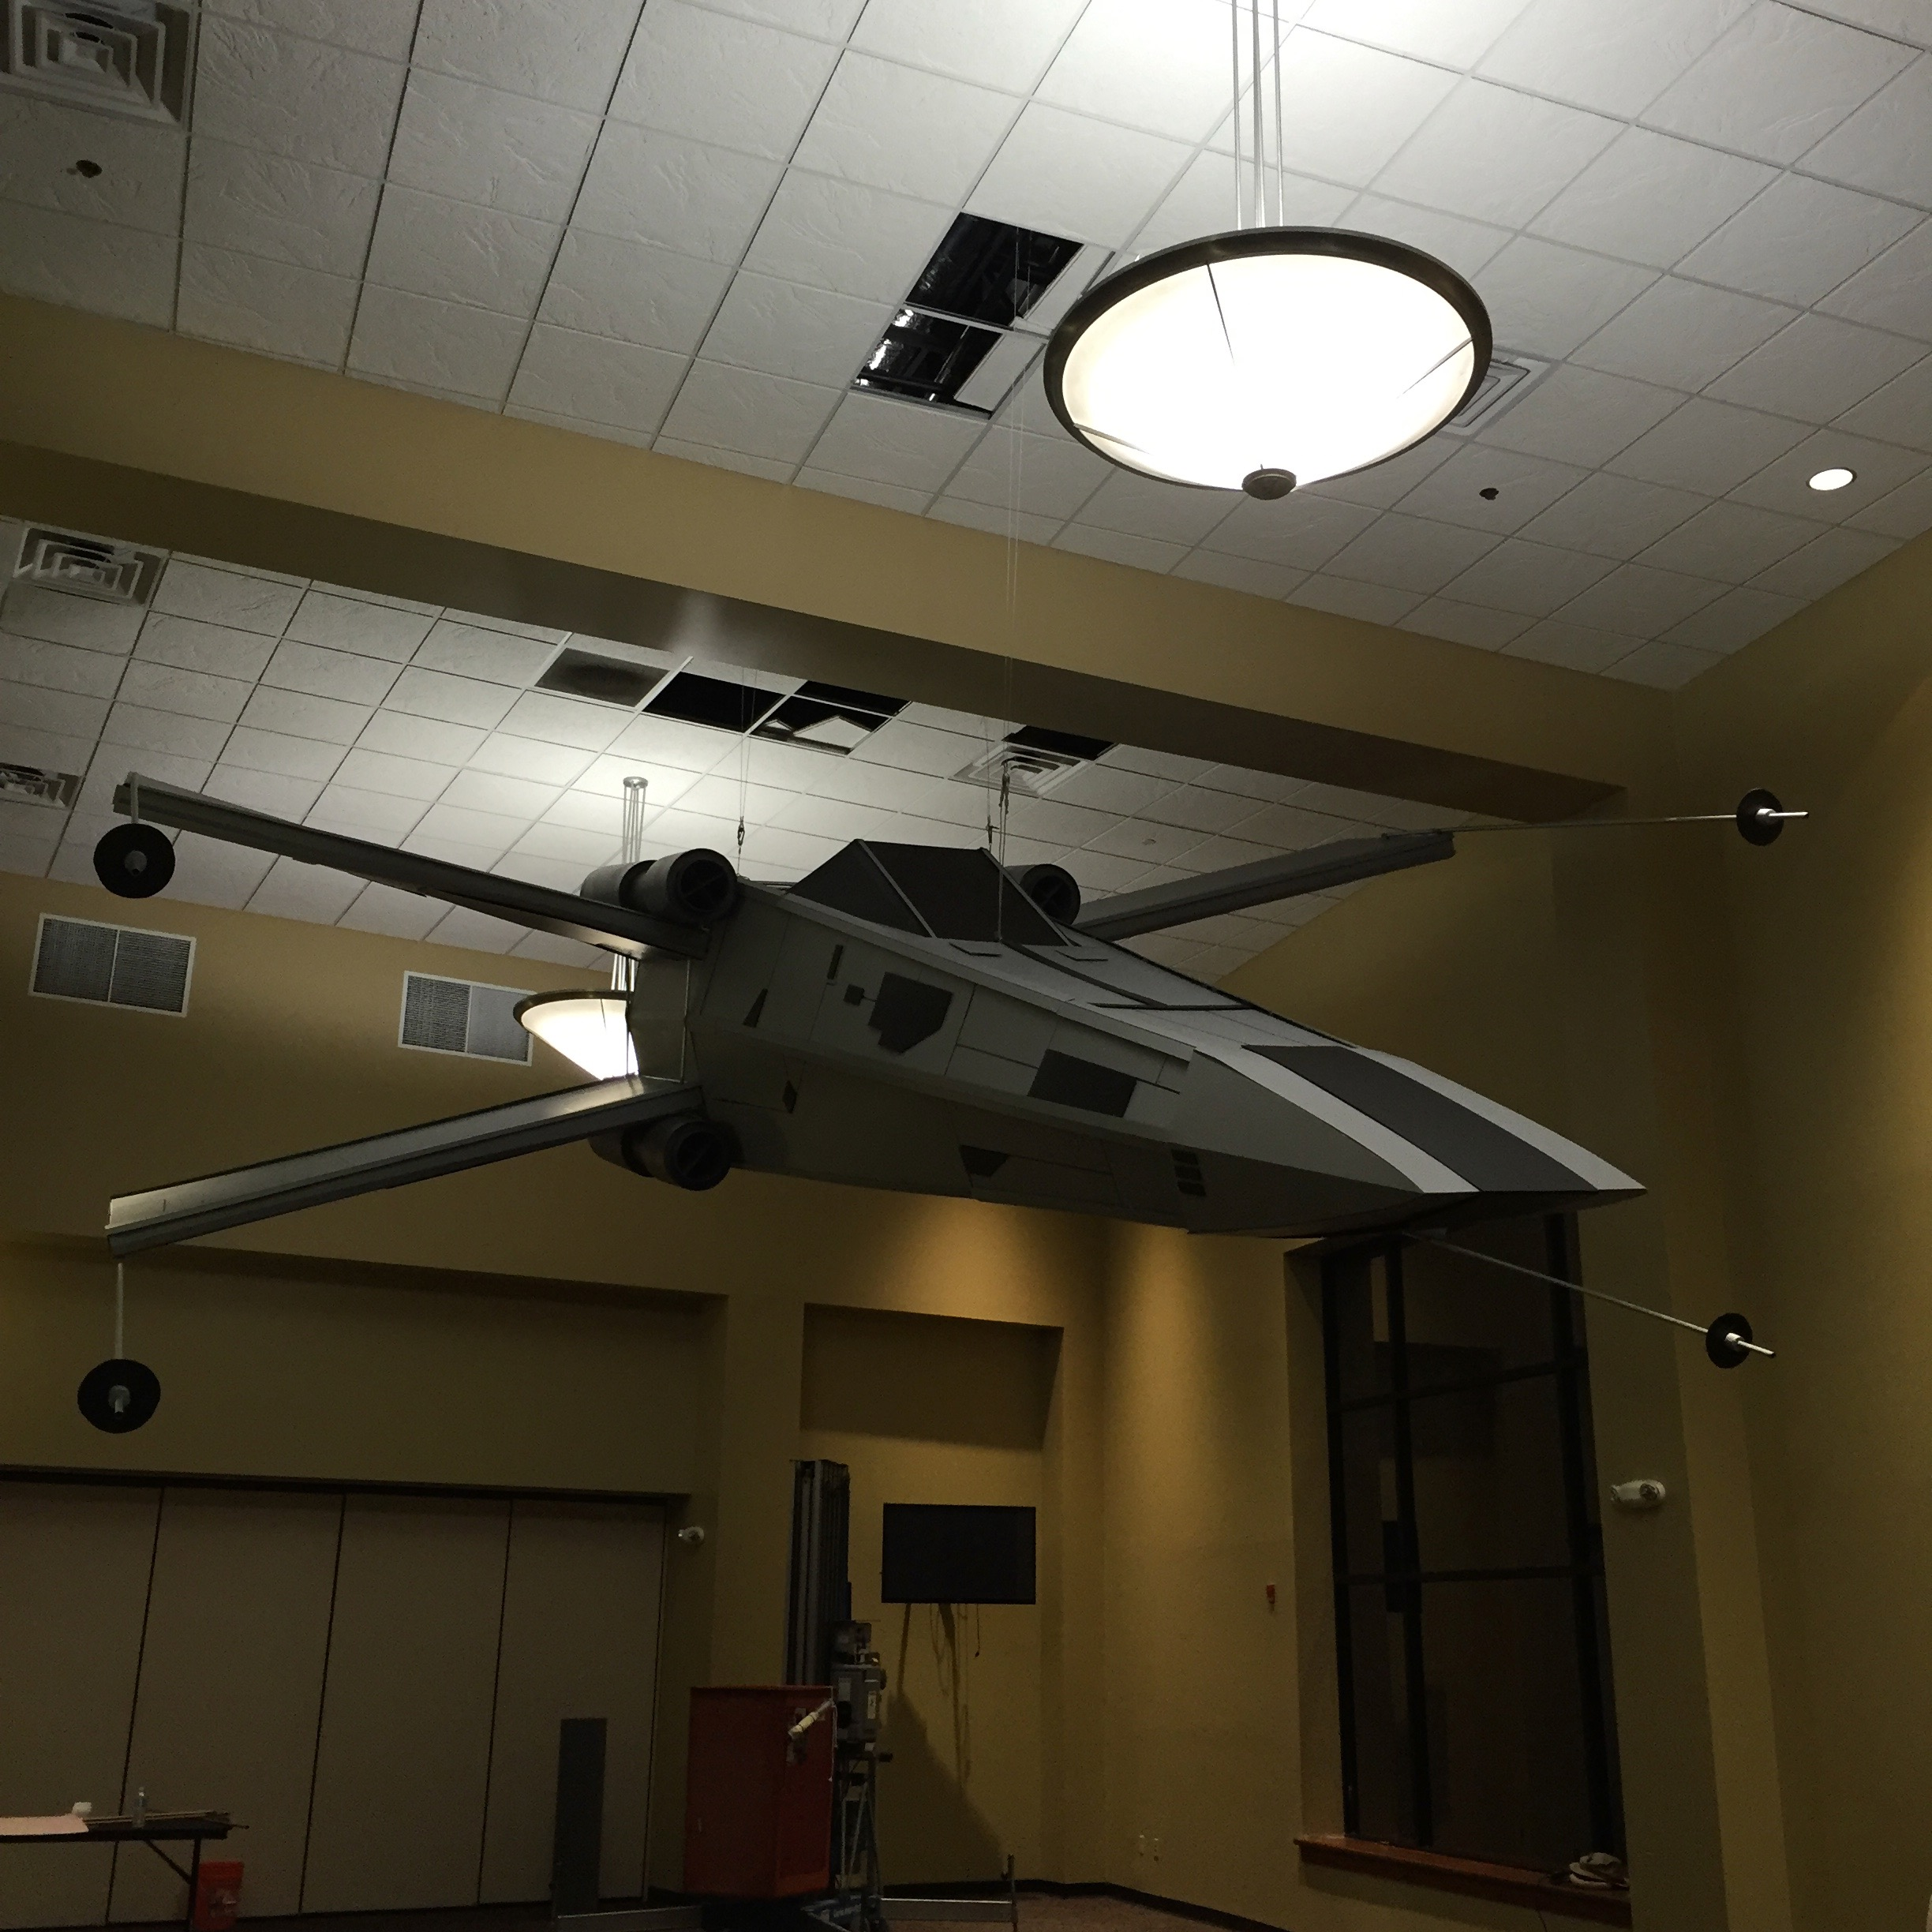 Picture of Star Wars X-wing Fighter, Life Sized Model for $400!